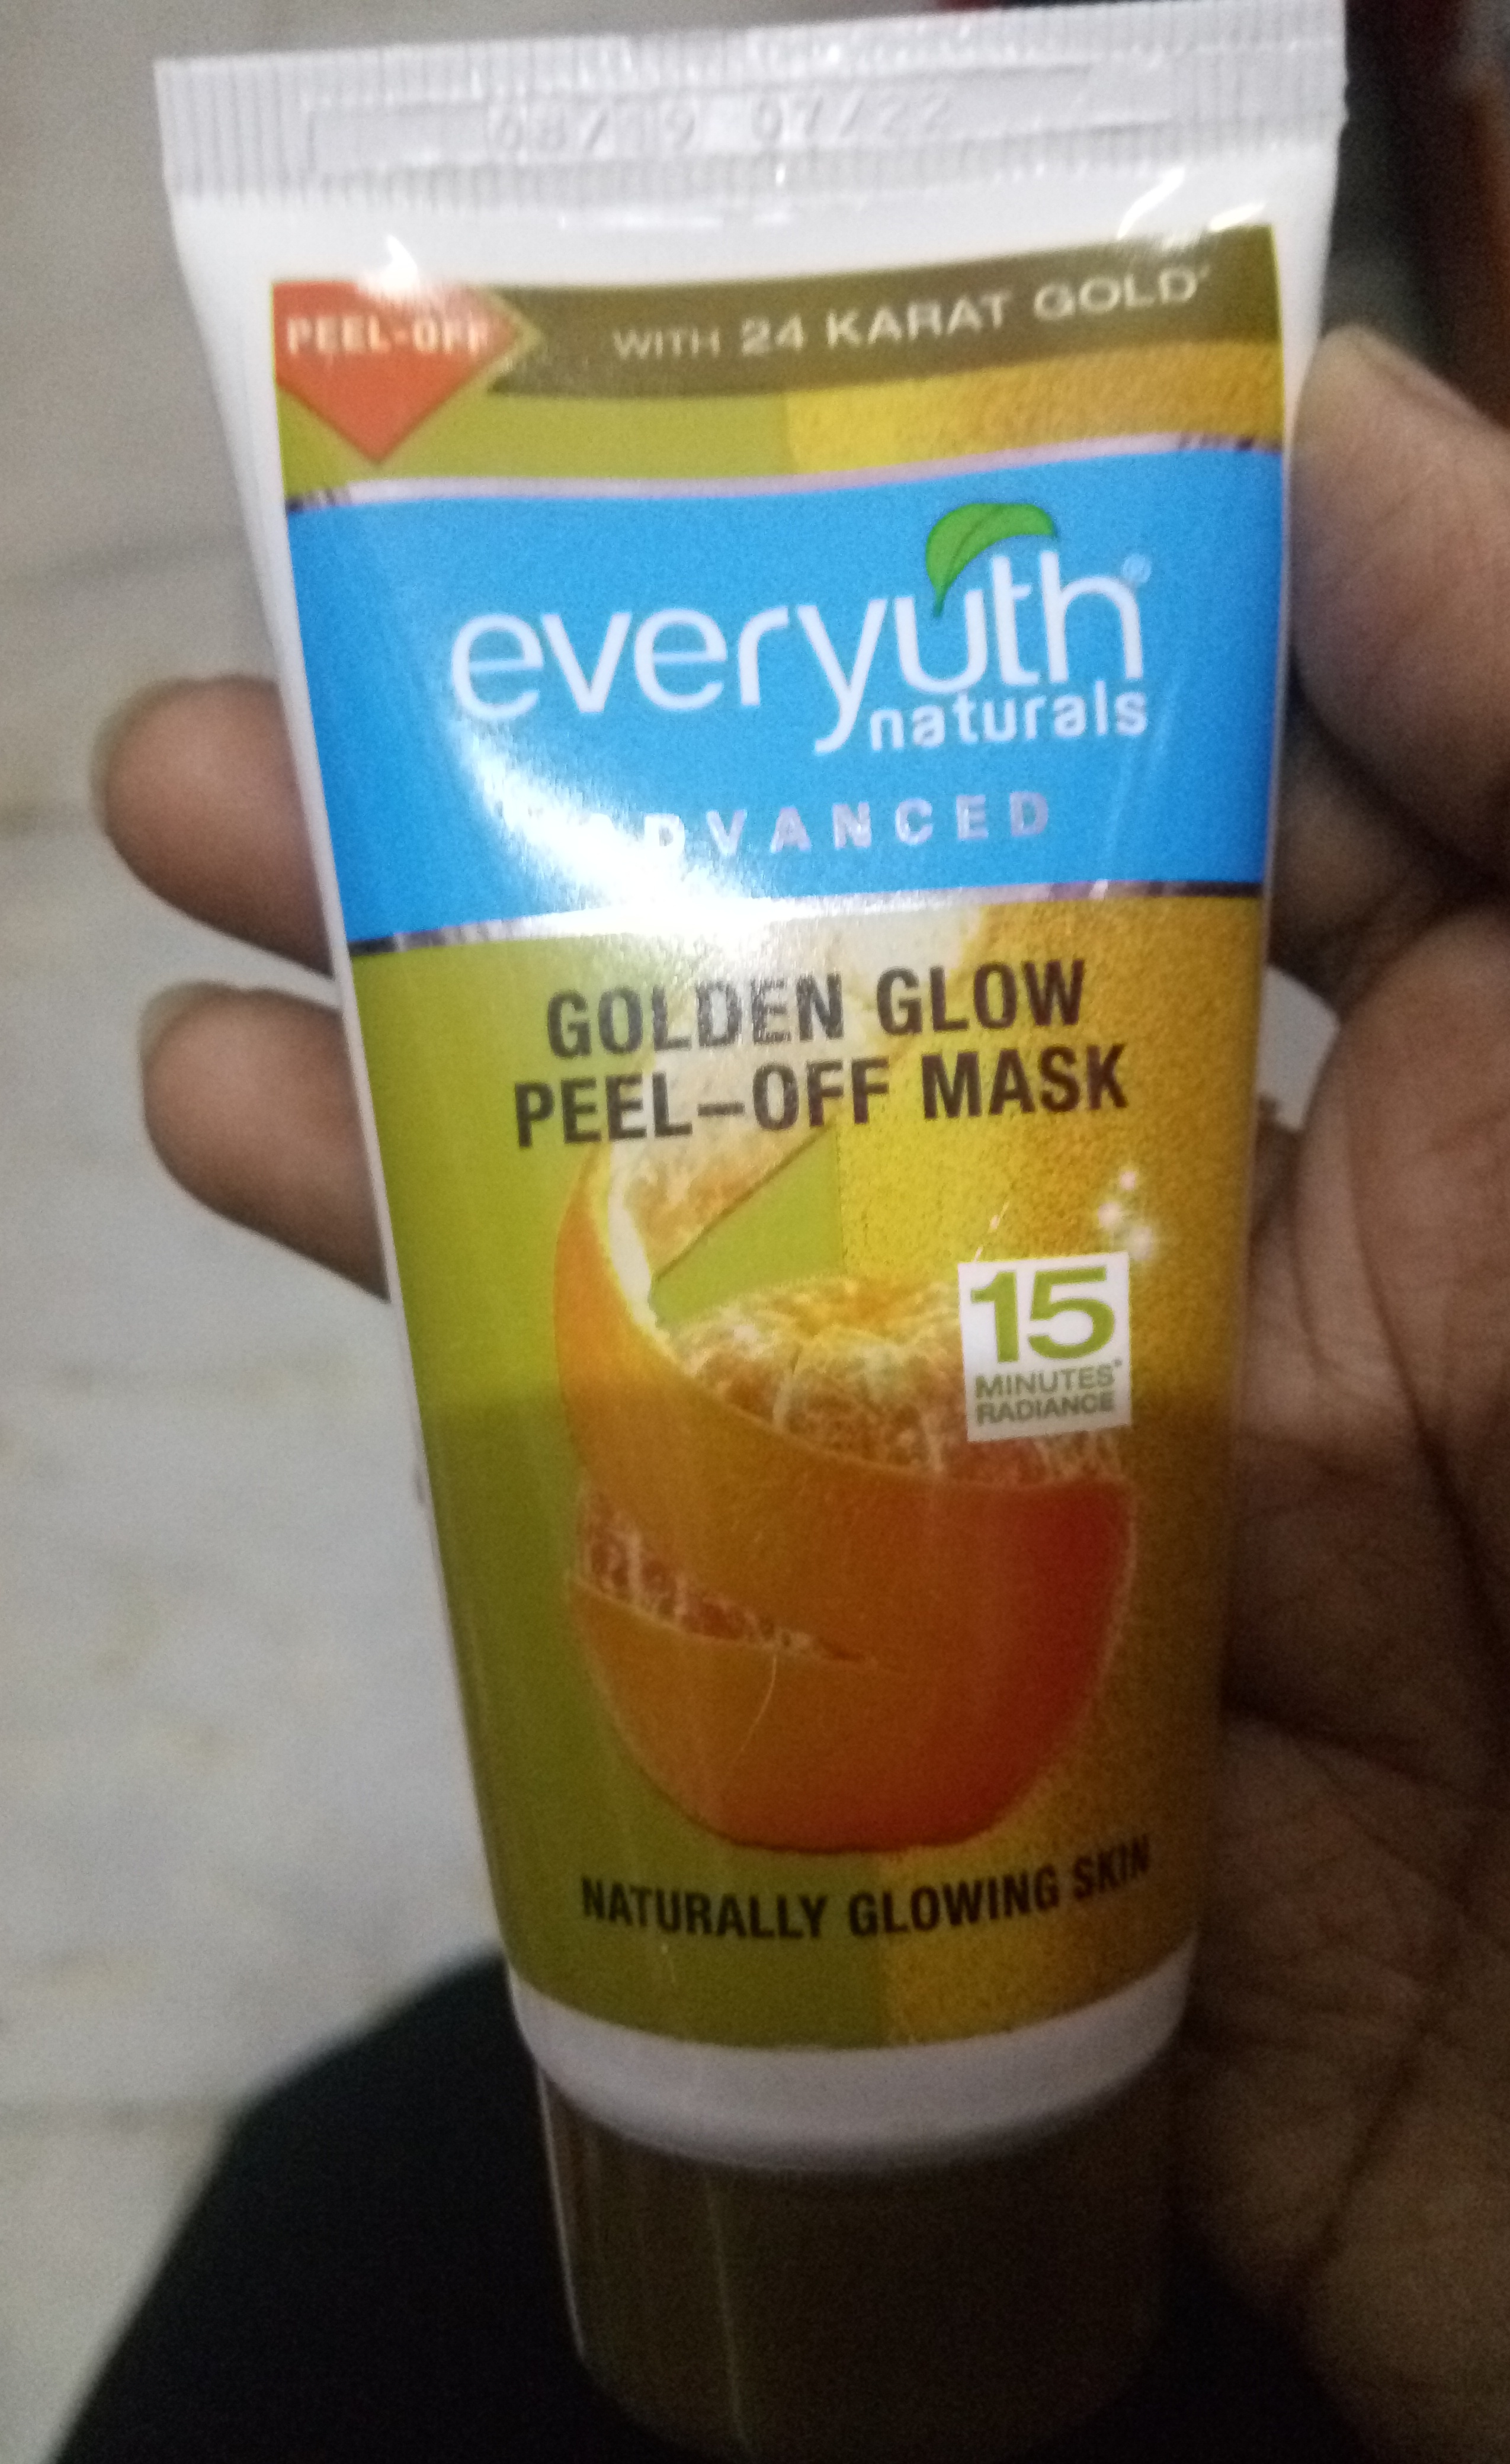 Everyuth Naturals Advanced Golden Glow Peel-off Mask-Love it-By Nasreen-1